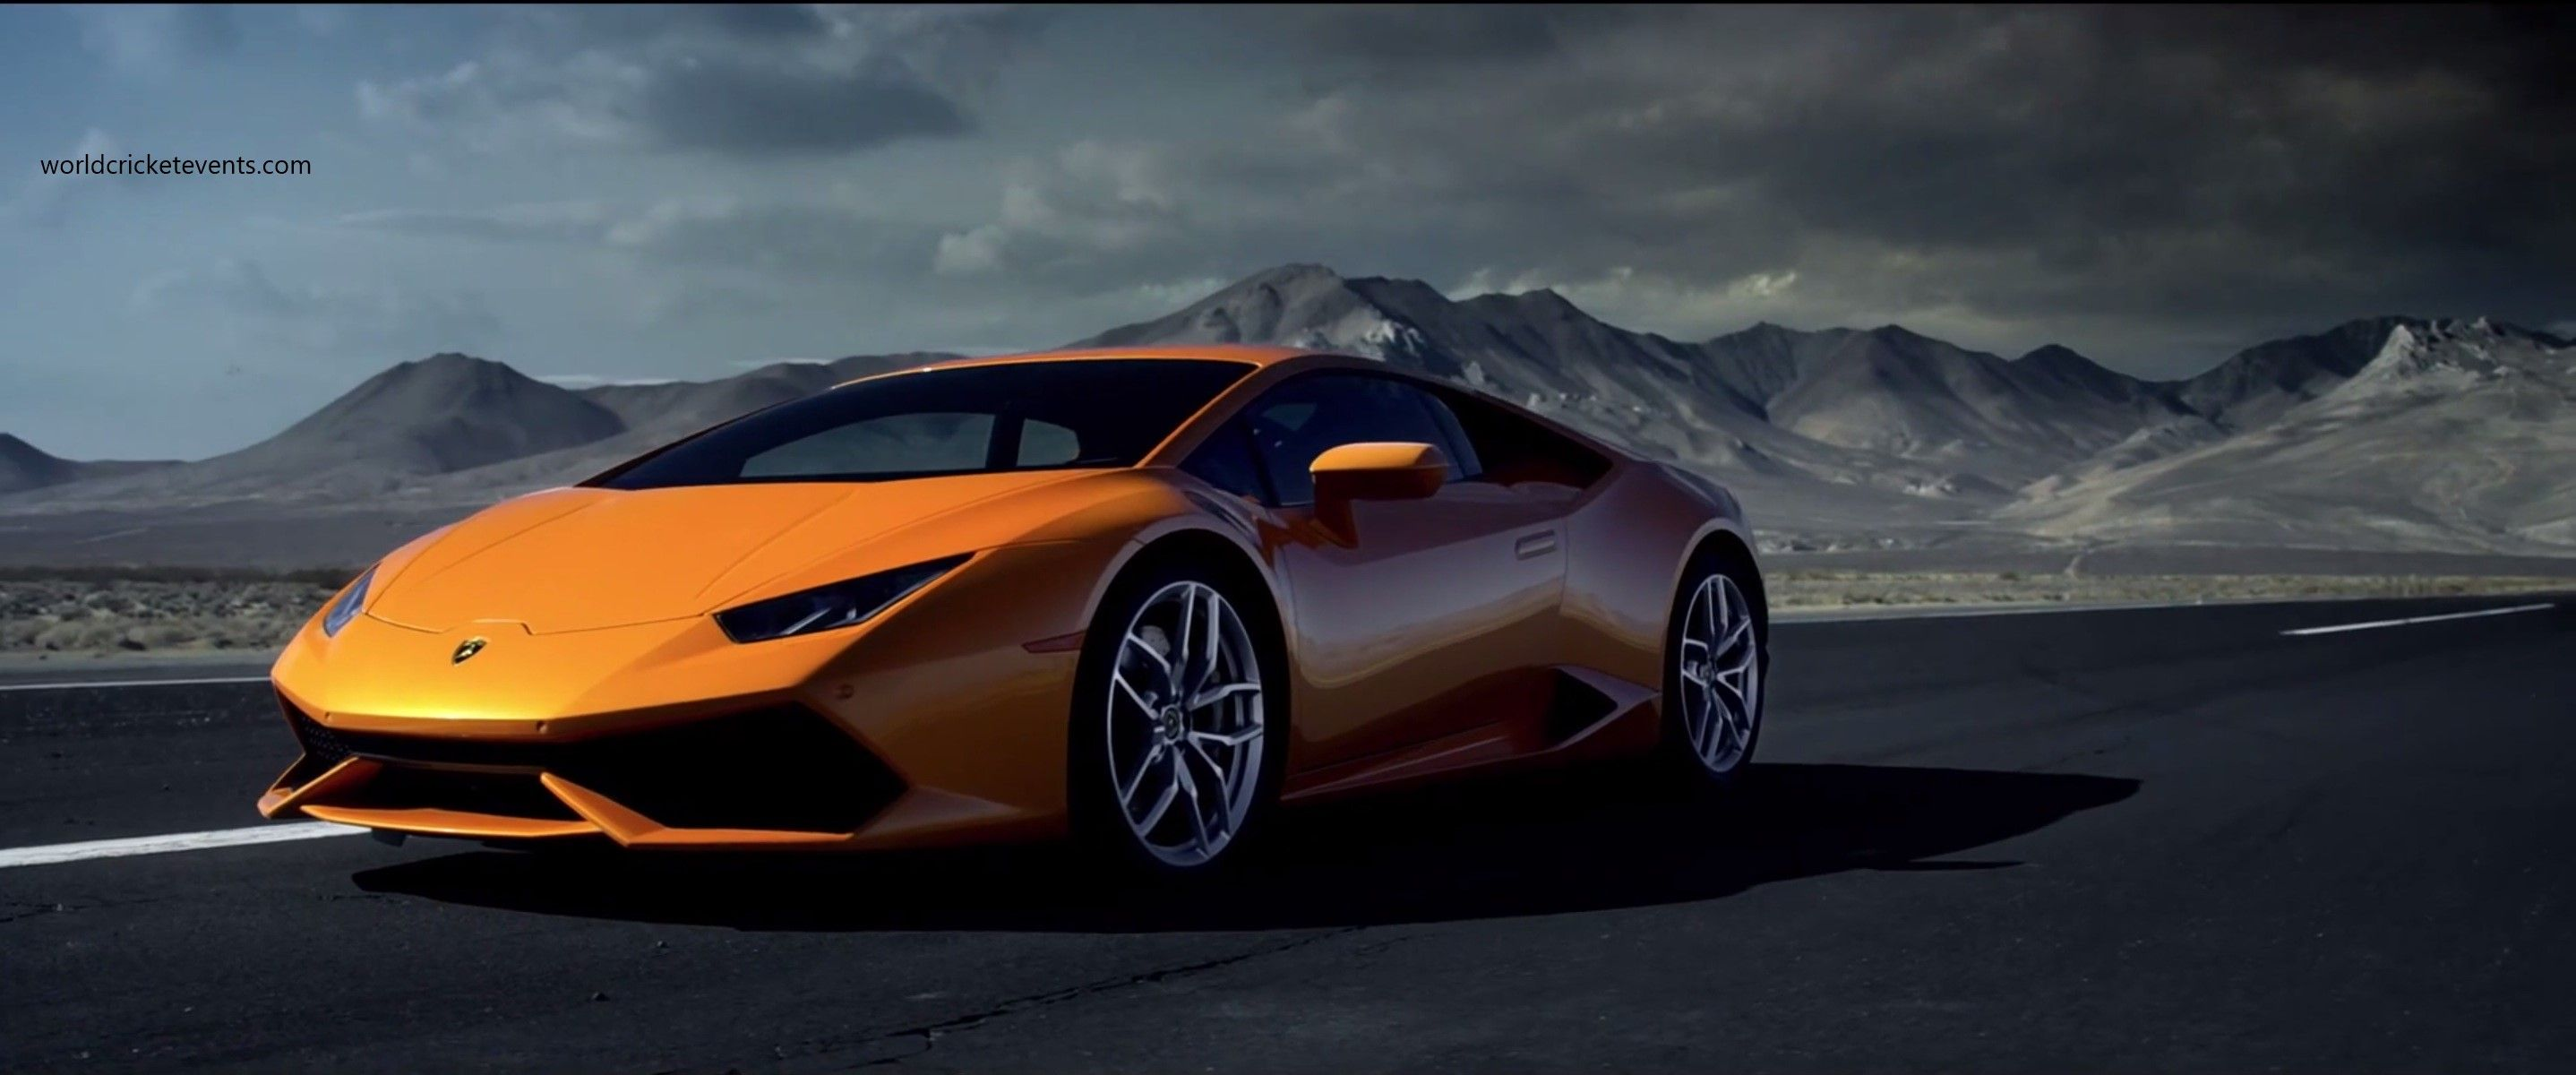 Hd wallpaper lamborghini - Lamborghini Super Car Hd Wallpapers Http Worldcricketevents Com Lamborghini Hd